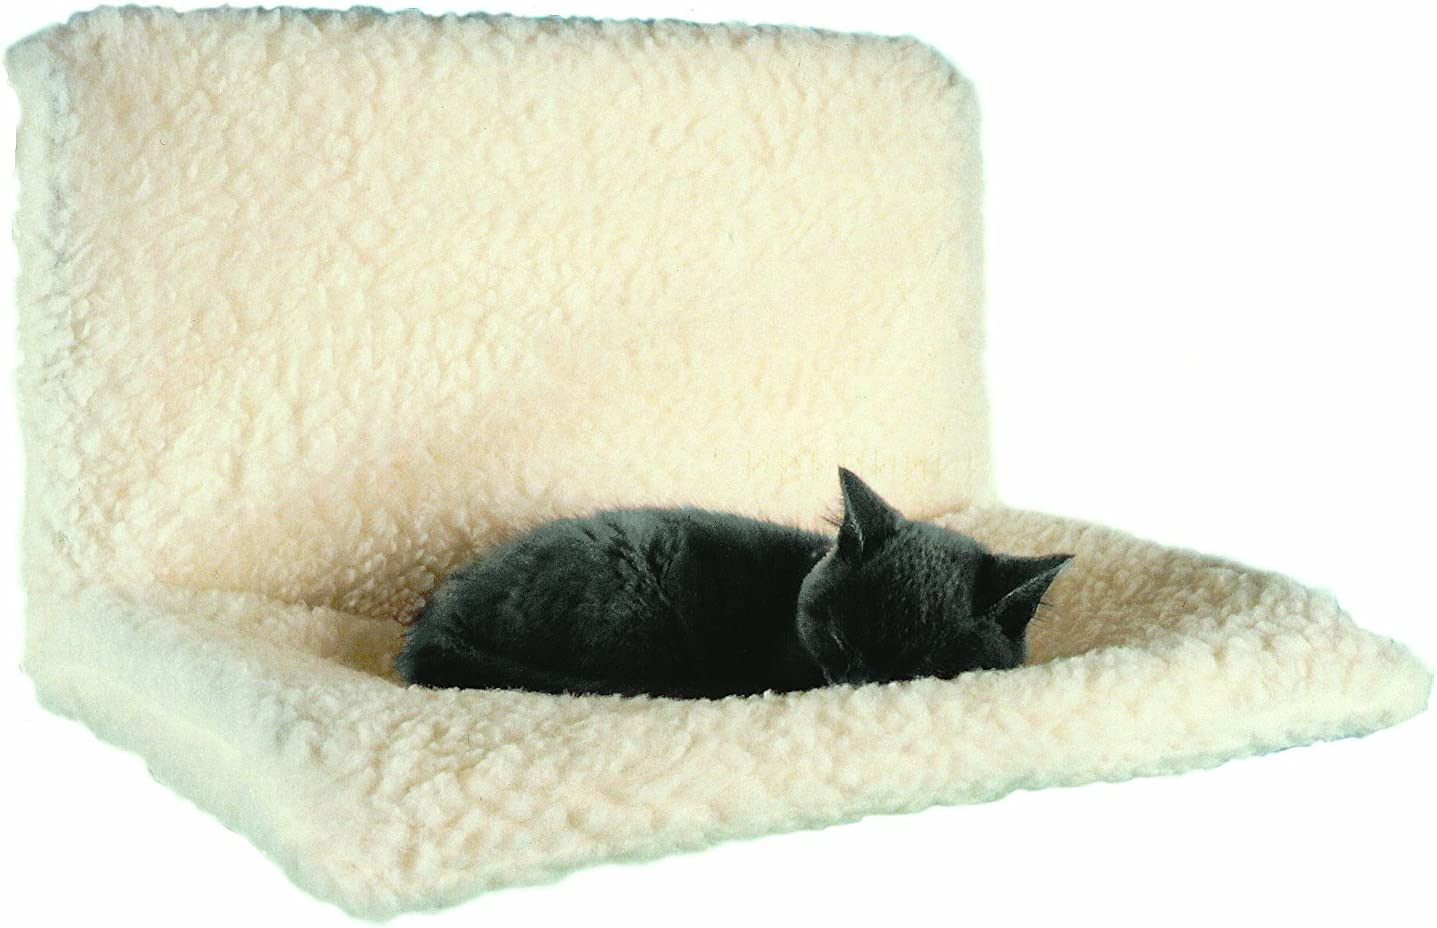 Calidad Pet Products - Cama para Gatos de radiador Suave Lavable ...